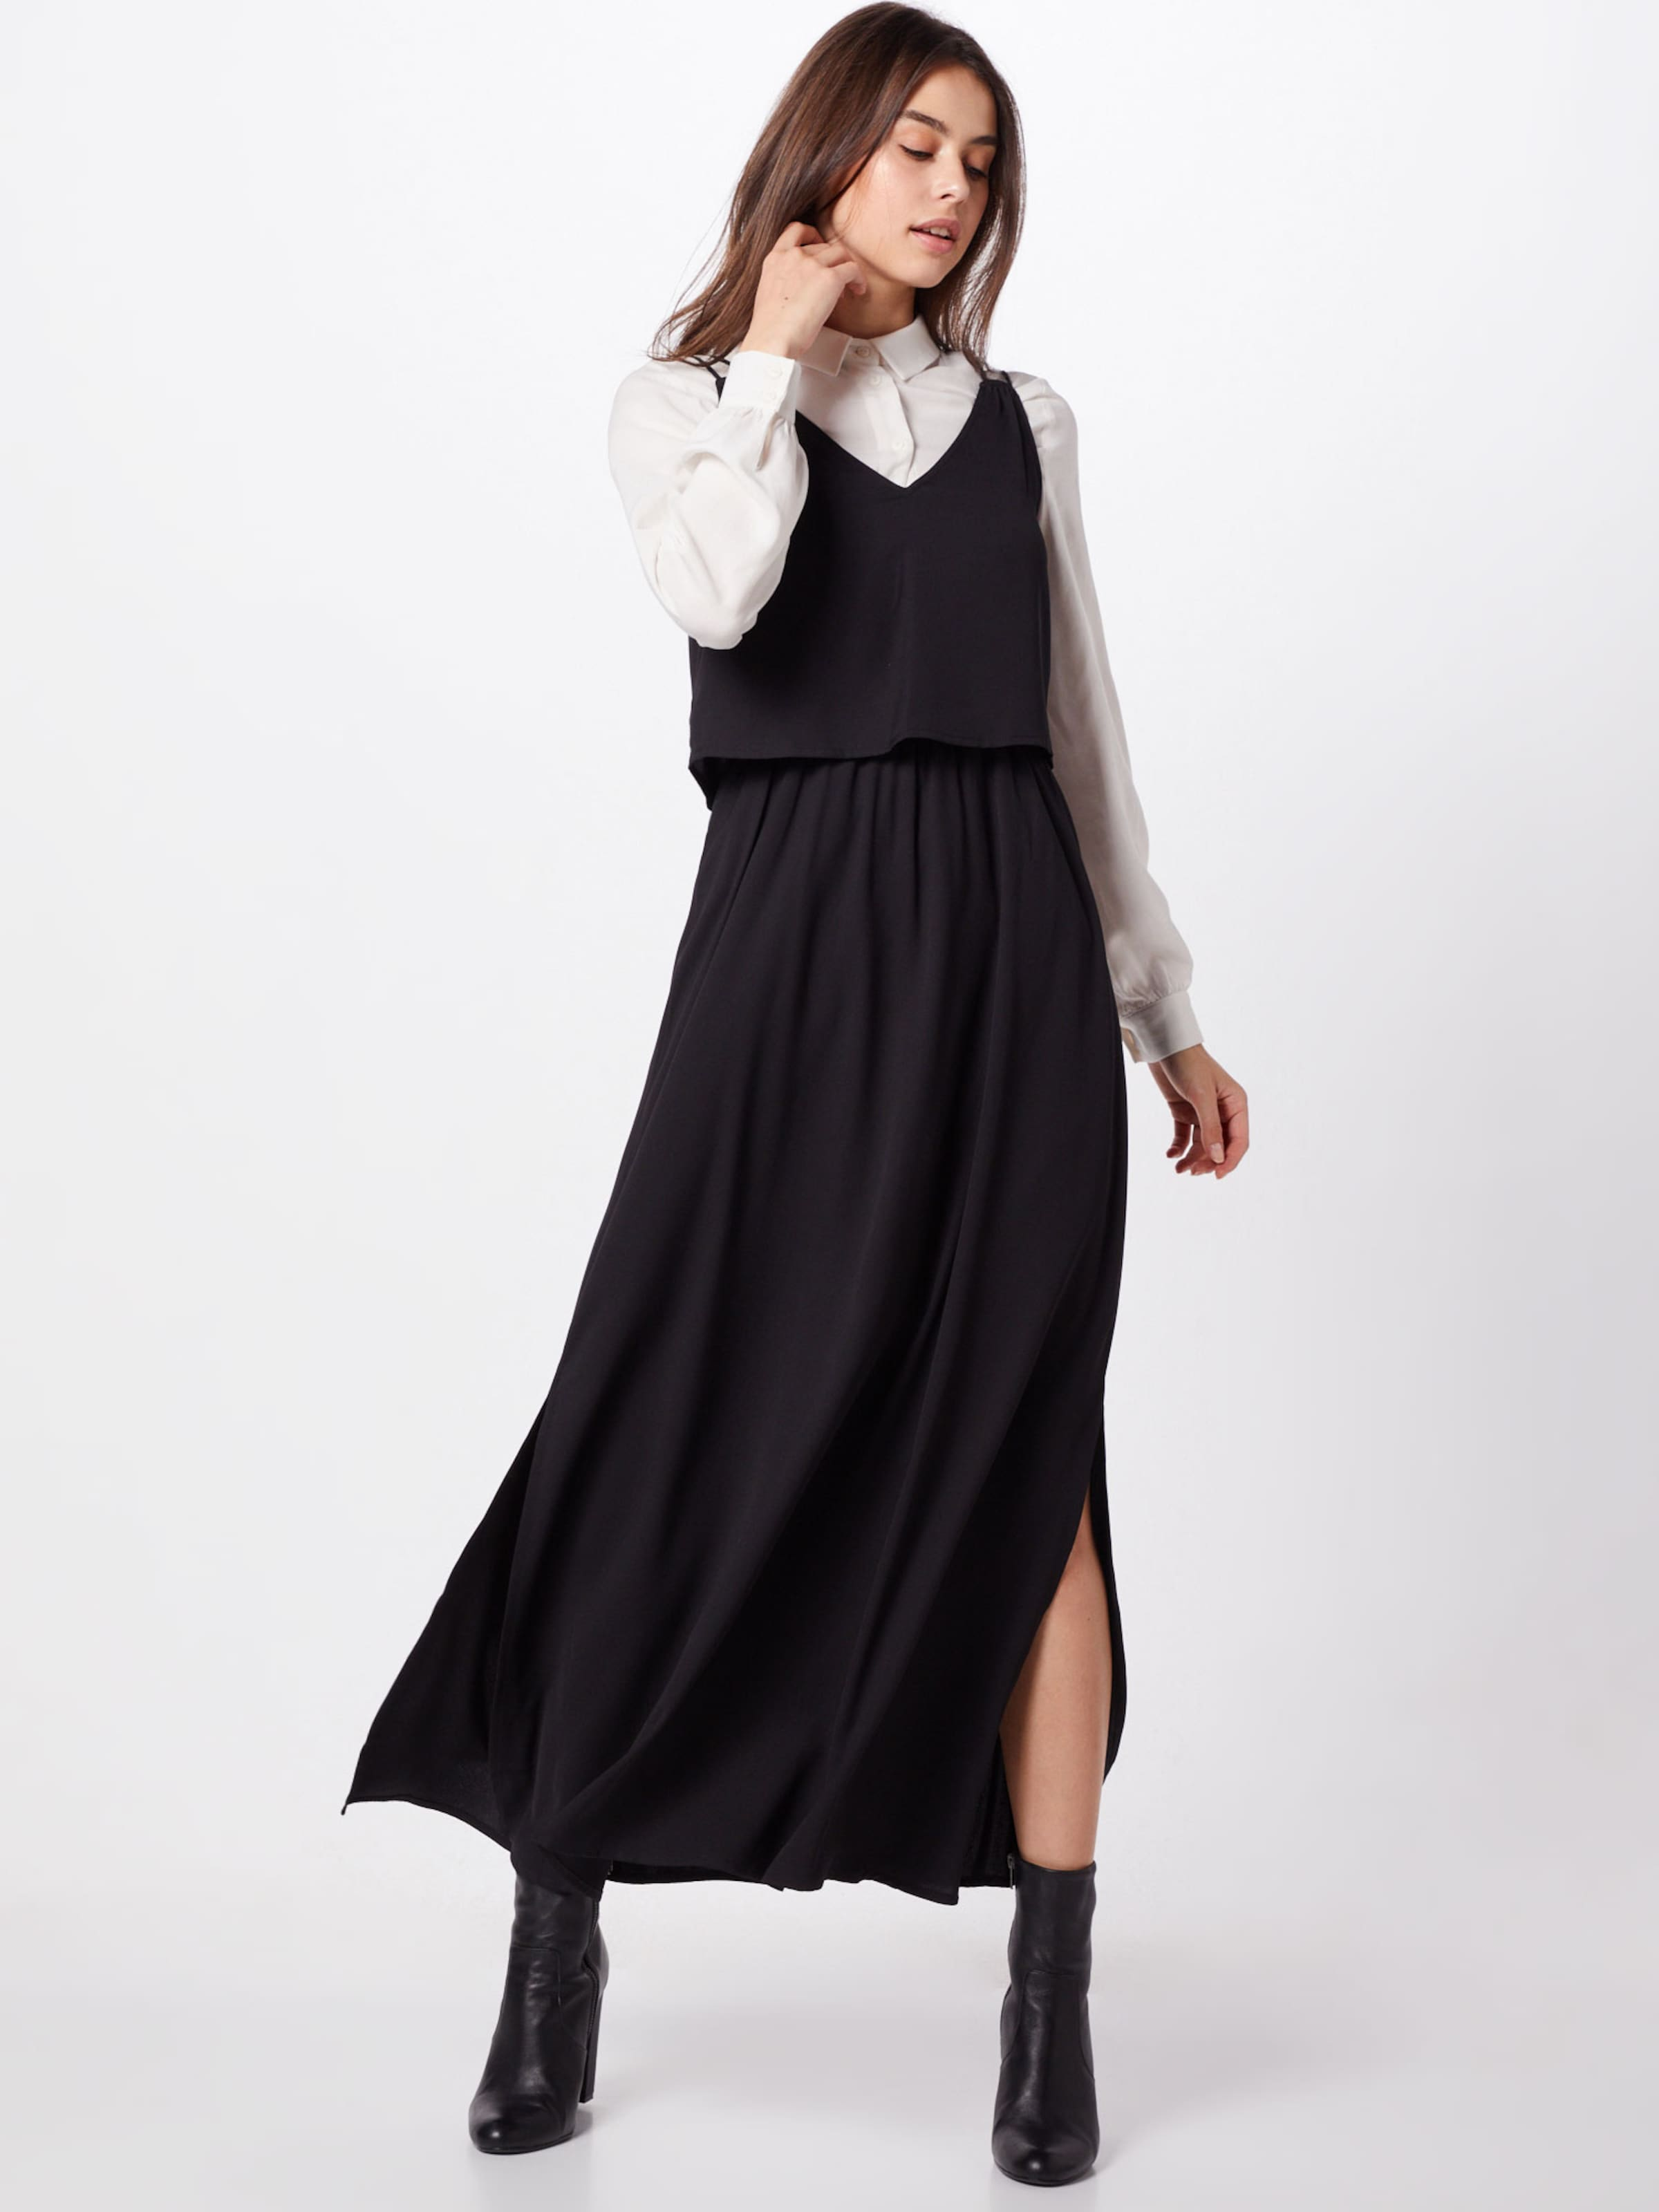 About Schwarz Kleid You 'athina' In lFcTK1J